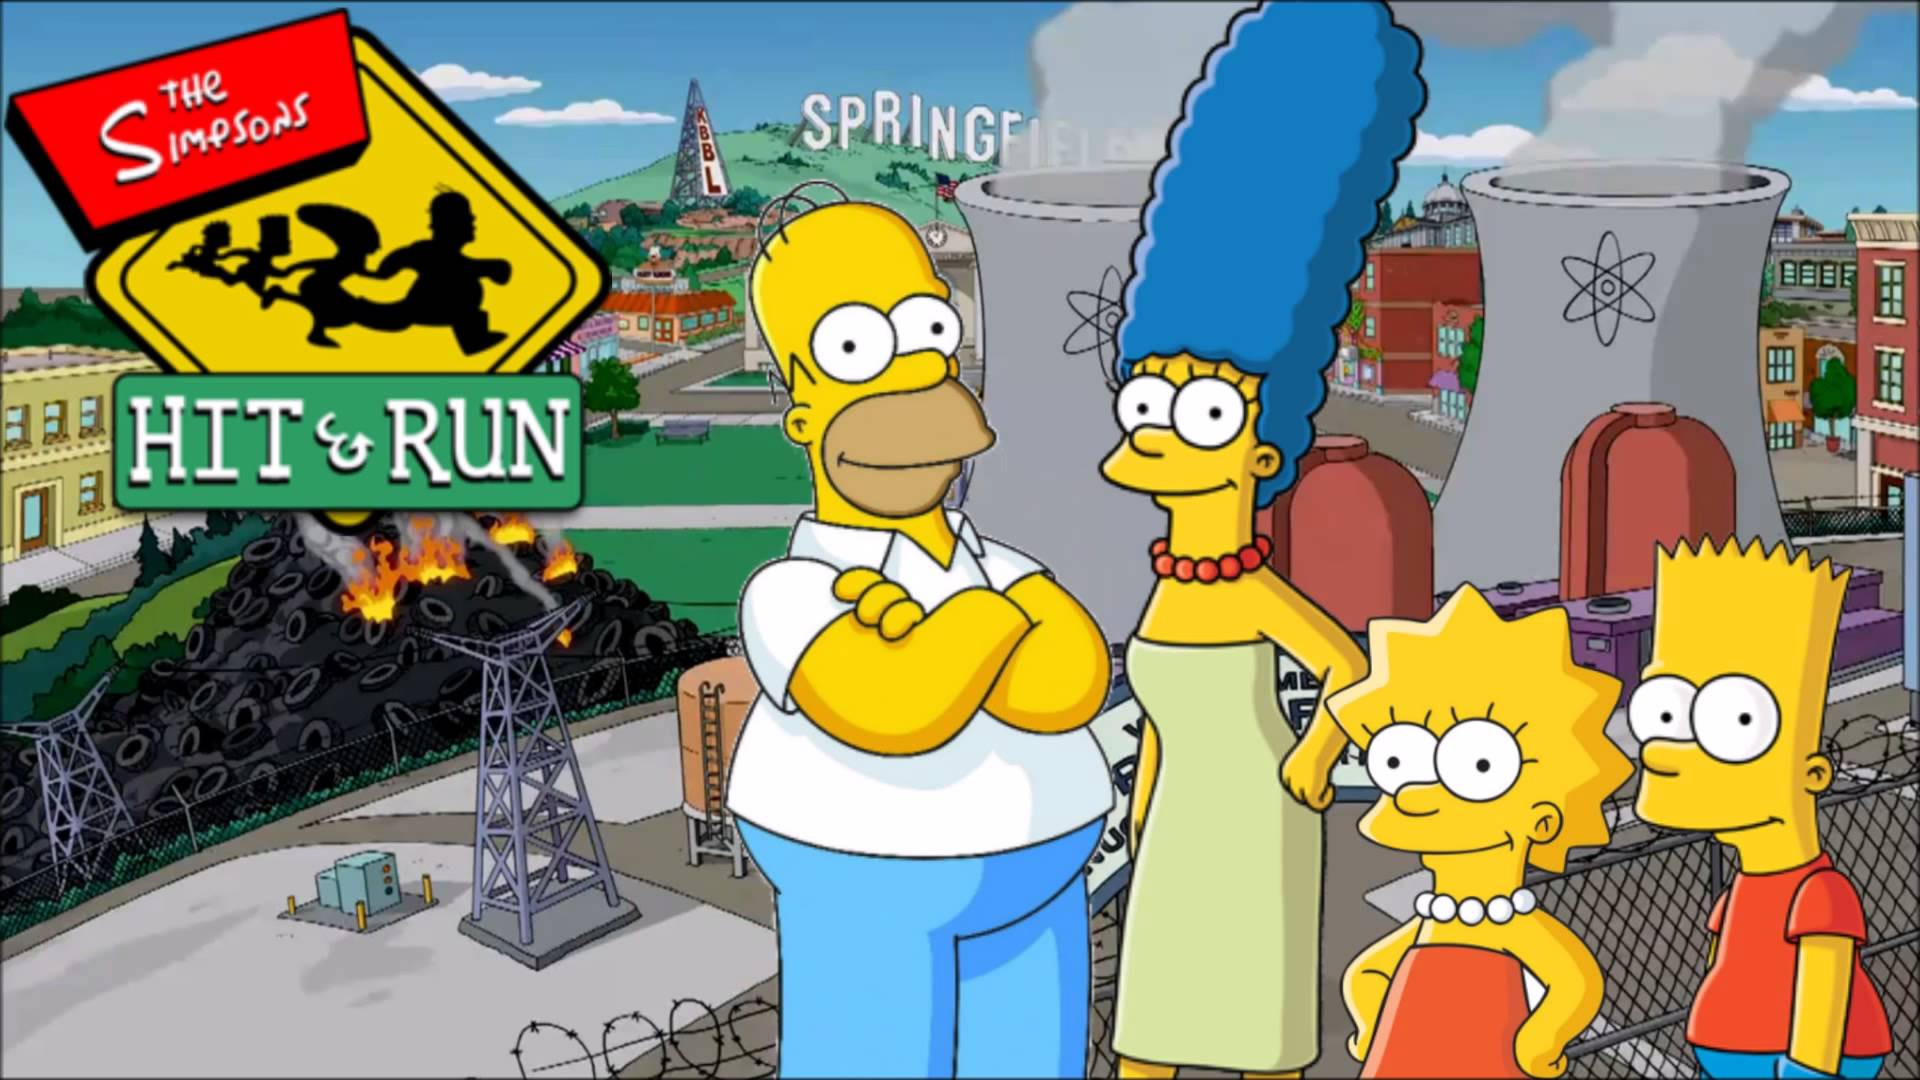 5 reasons why the simpsons hit and run rules.